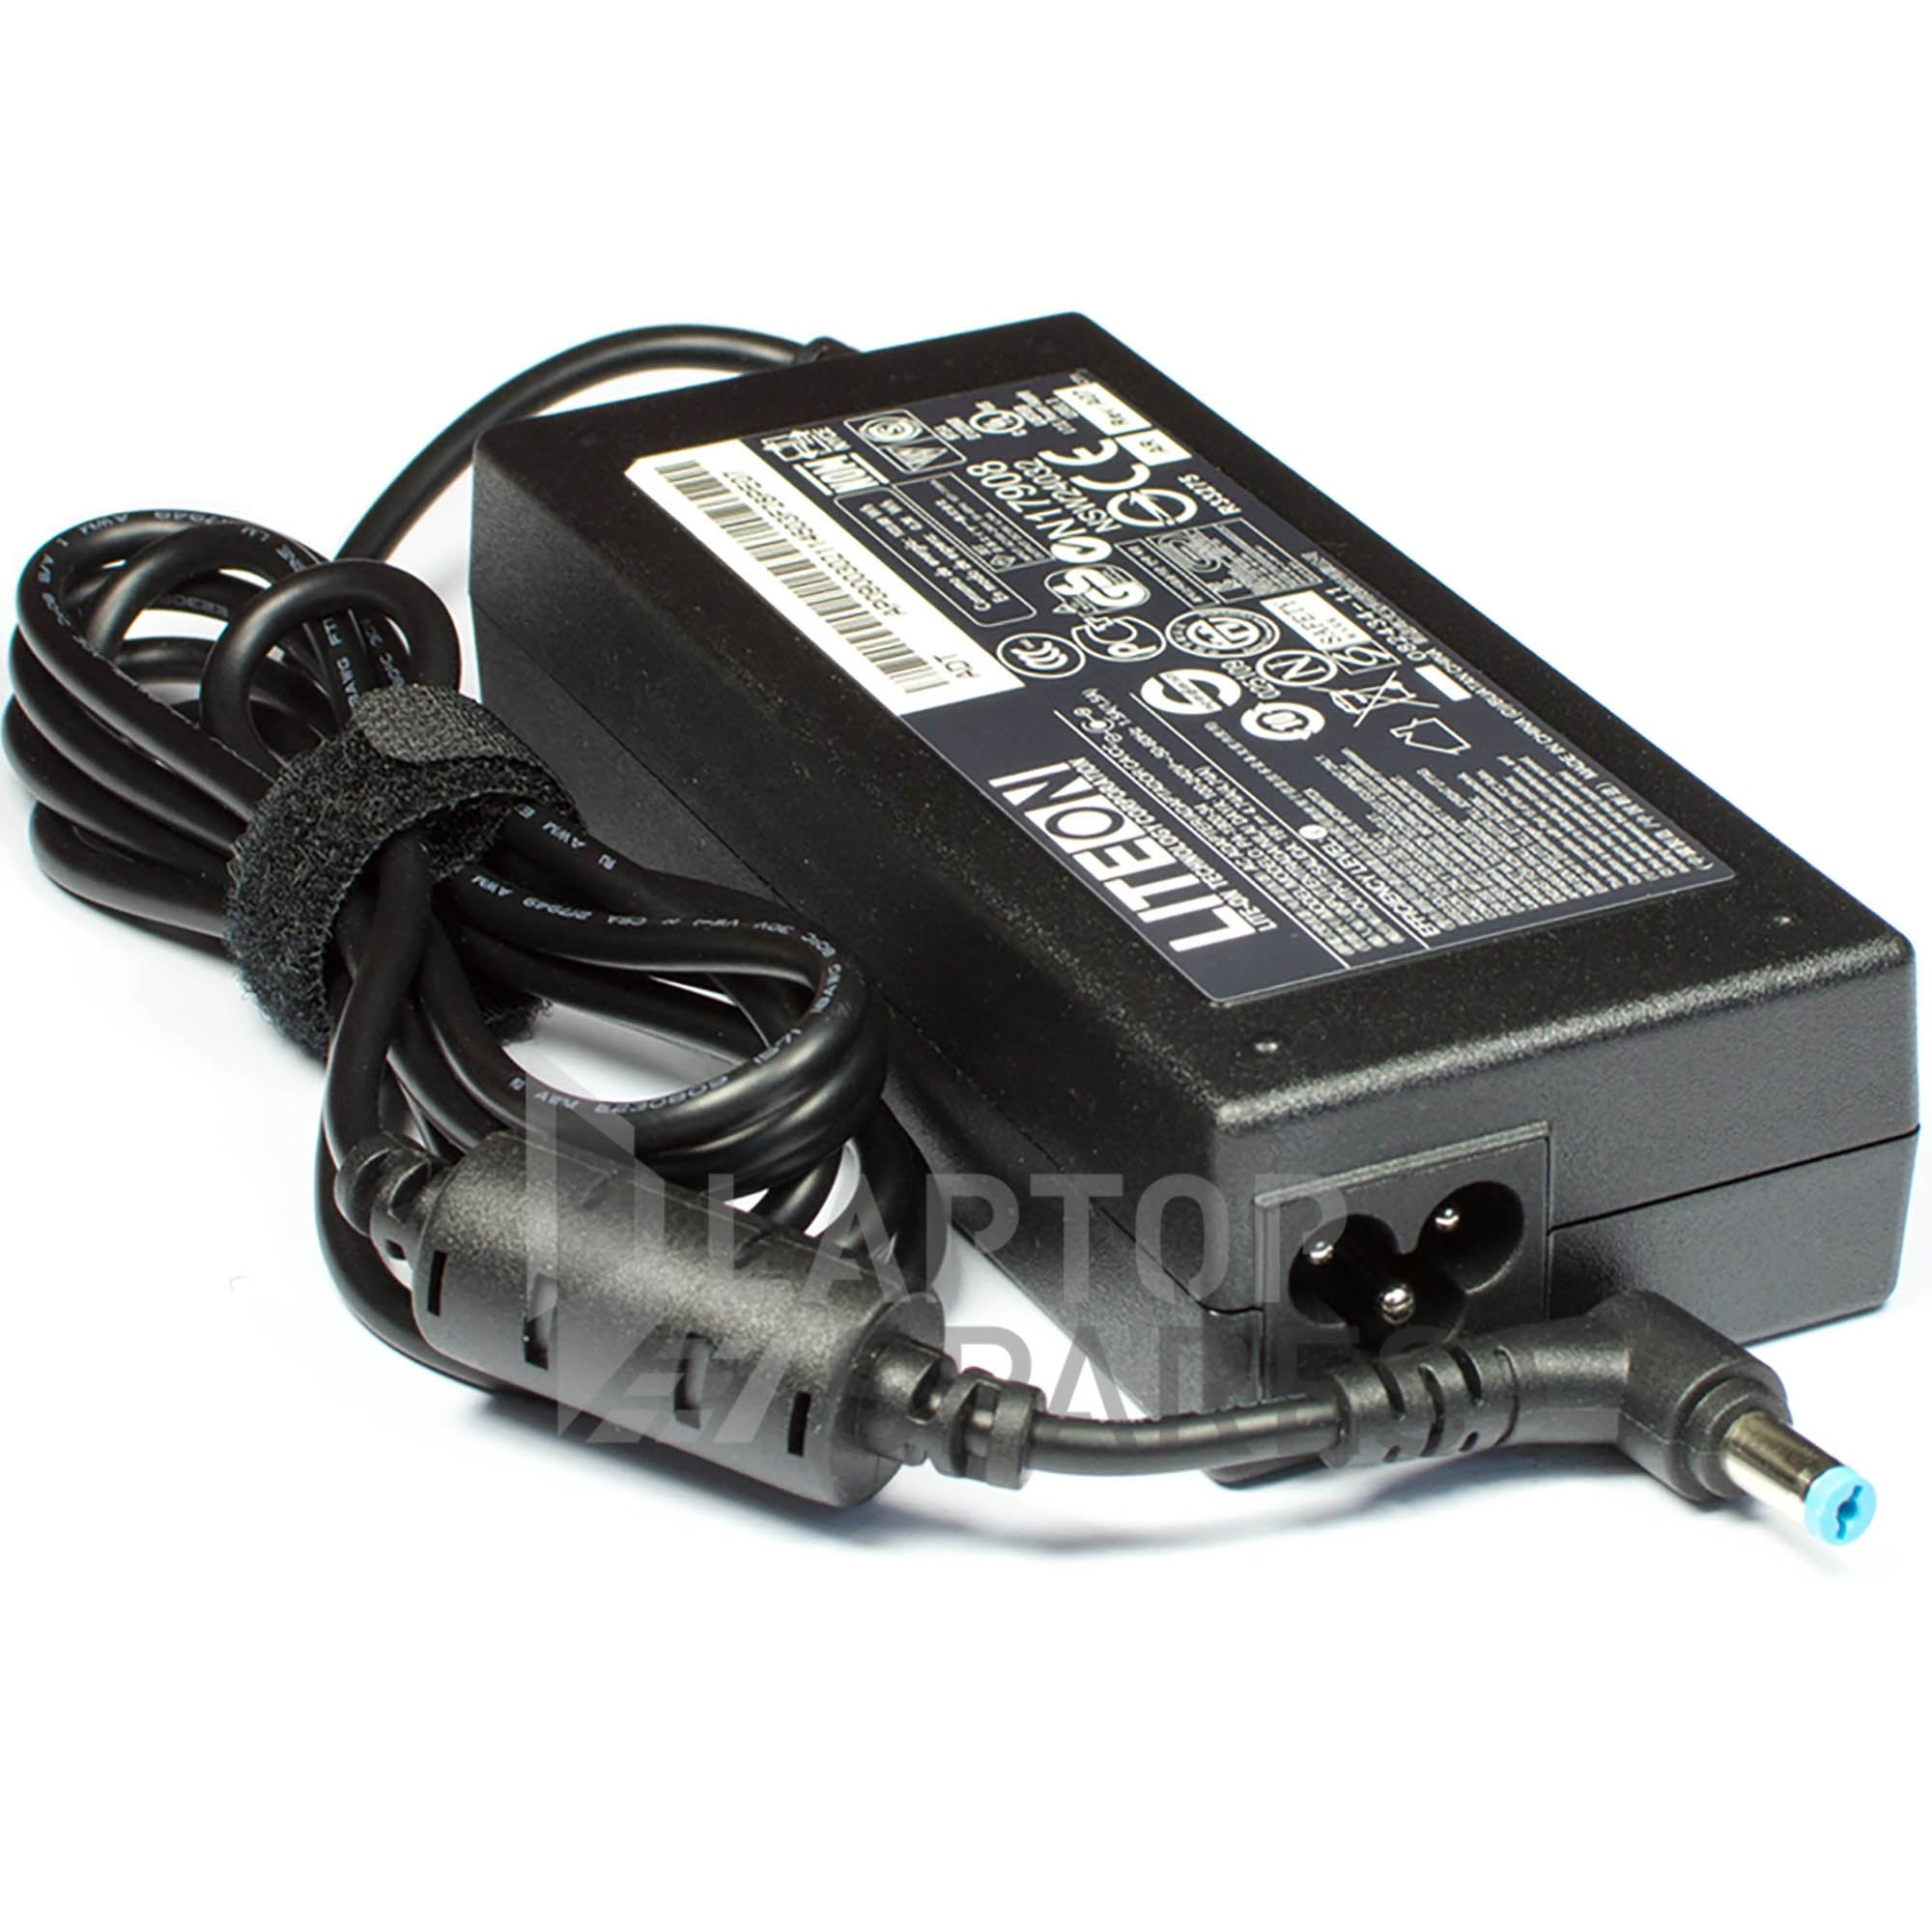 Acer Aspire 5710 5510 5732 Laptop AC Adapter Charger